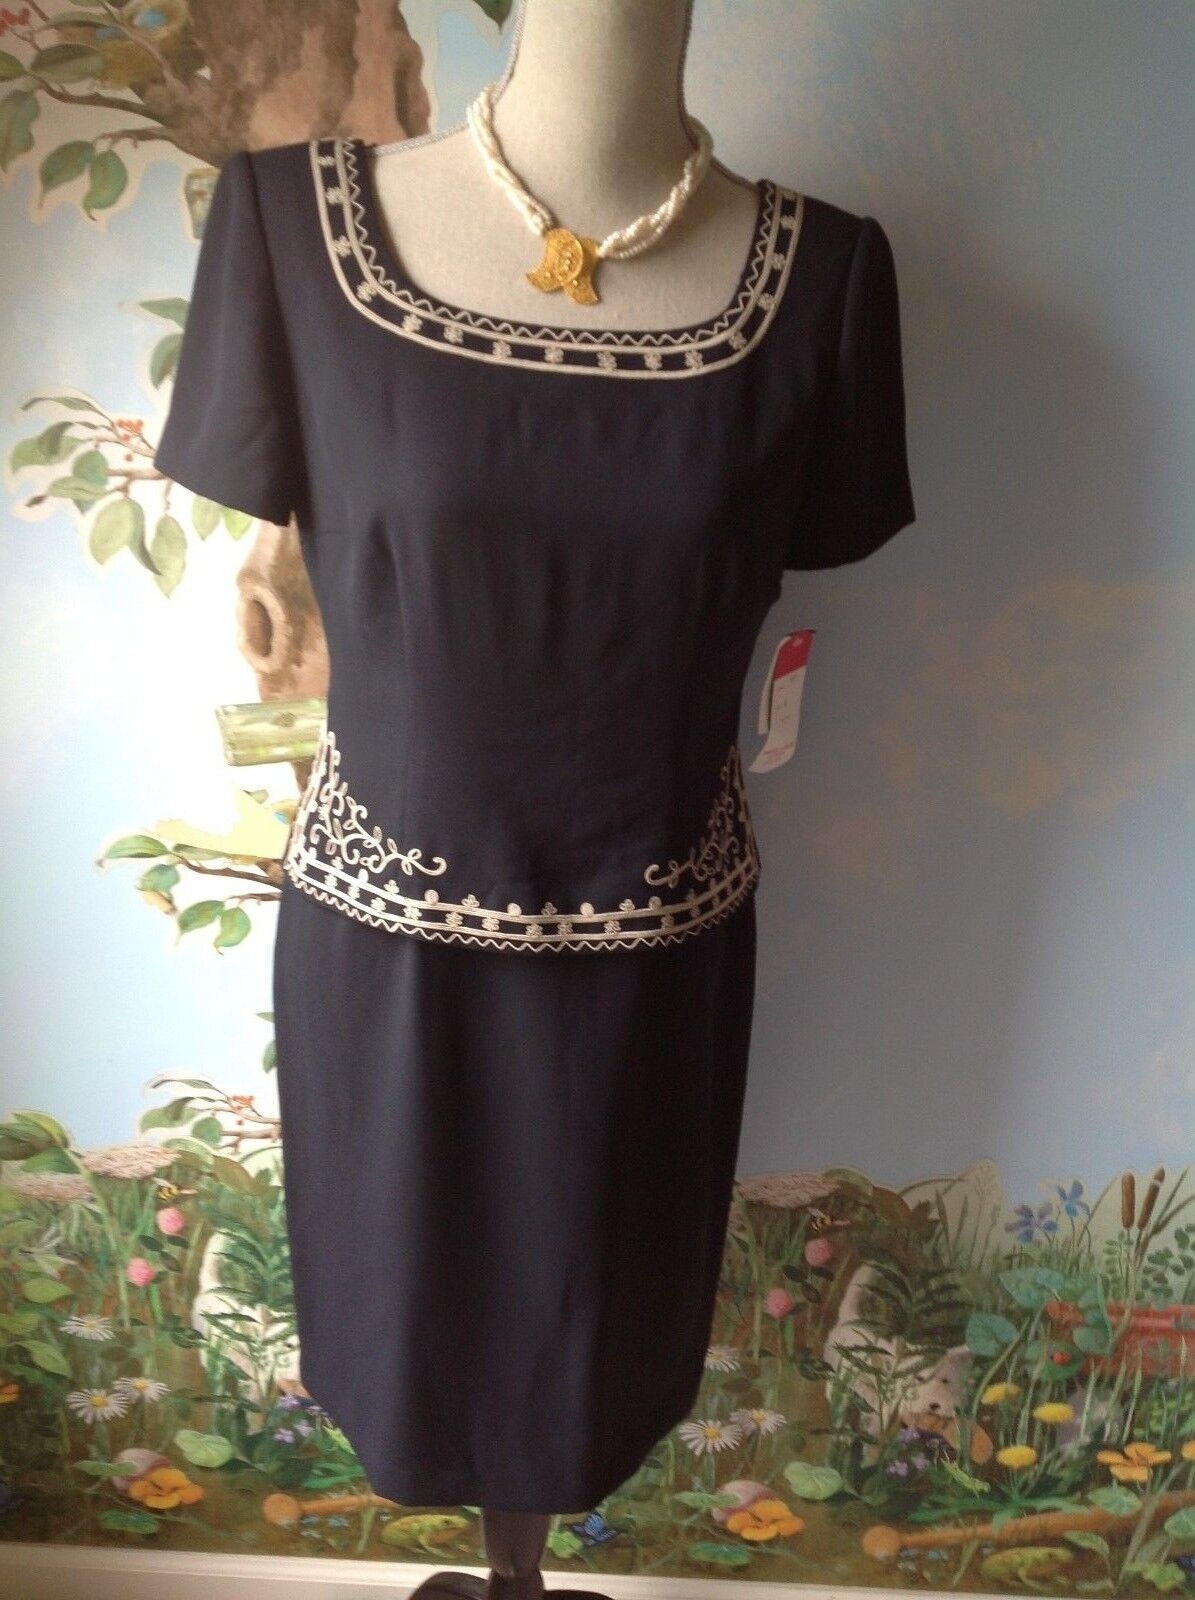 VTG Maggy London Petite Women's Dress Embroidery Embellished Size 8P NWT